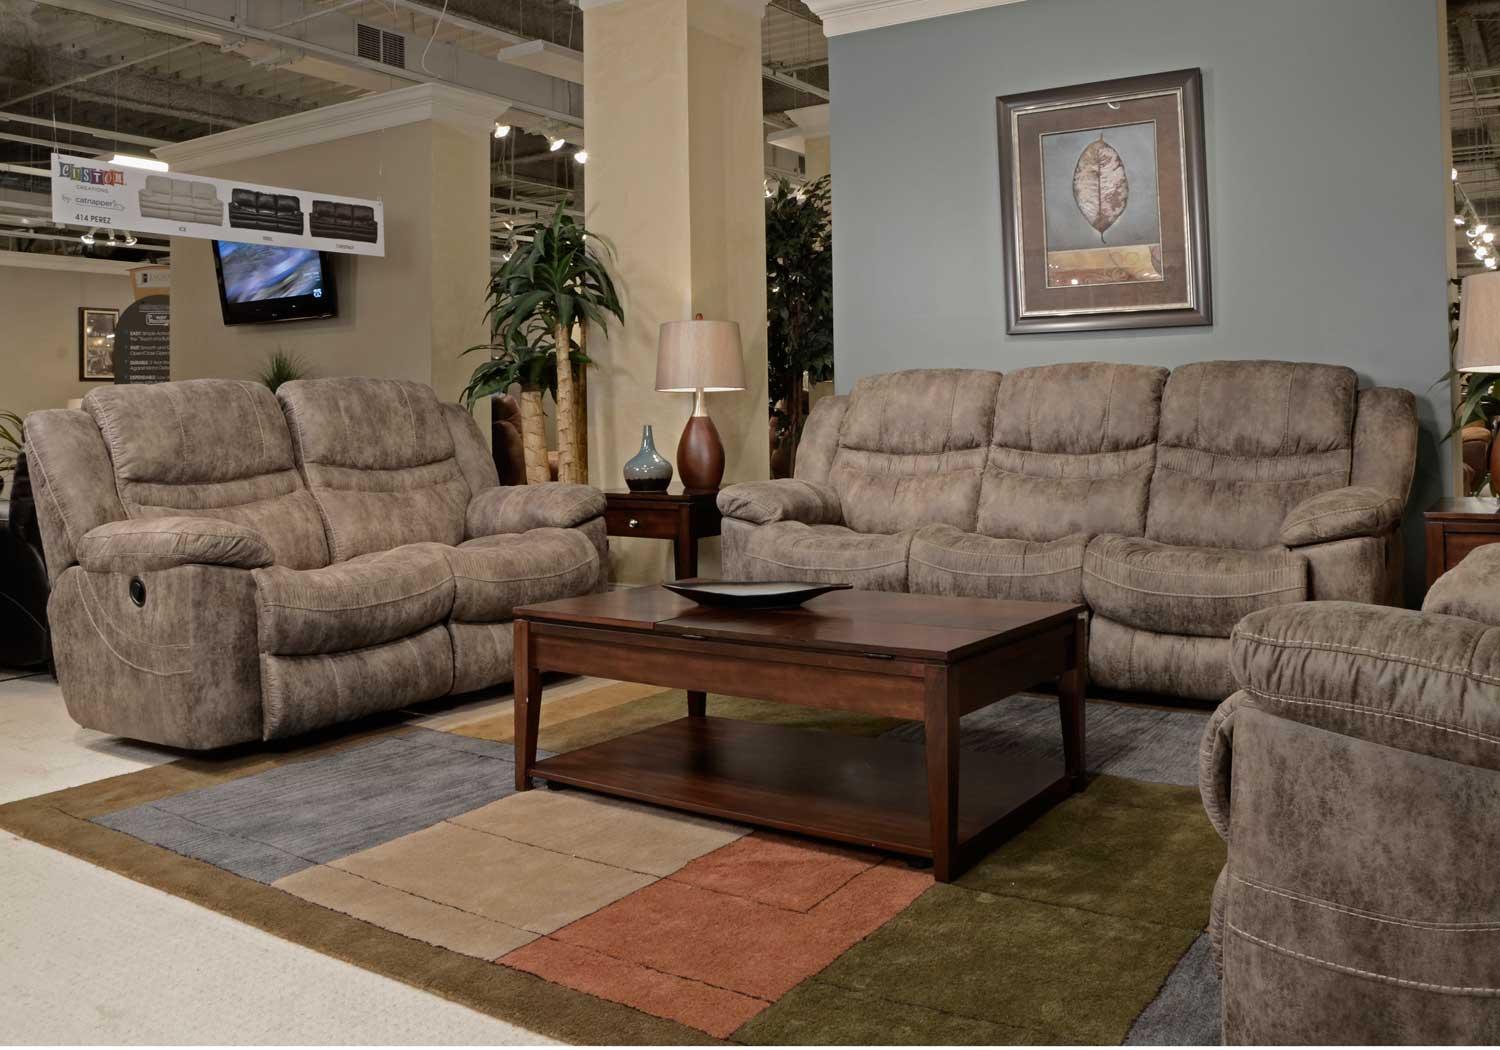 Superior CatNapper Valiant Reclining Sofa Set   Marble